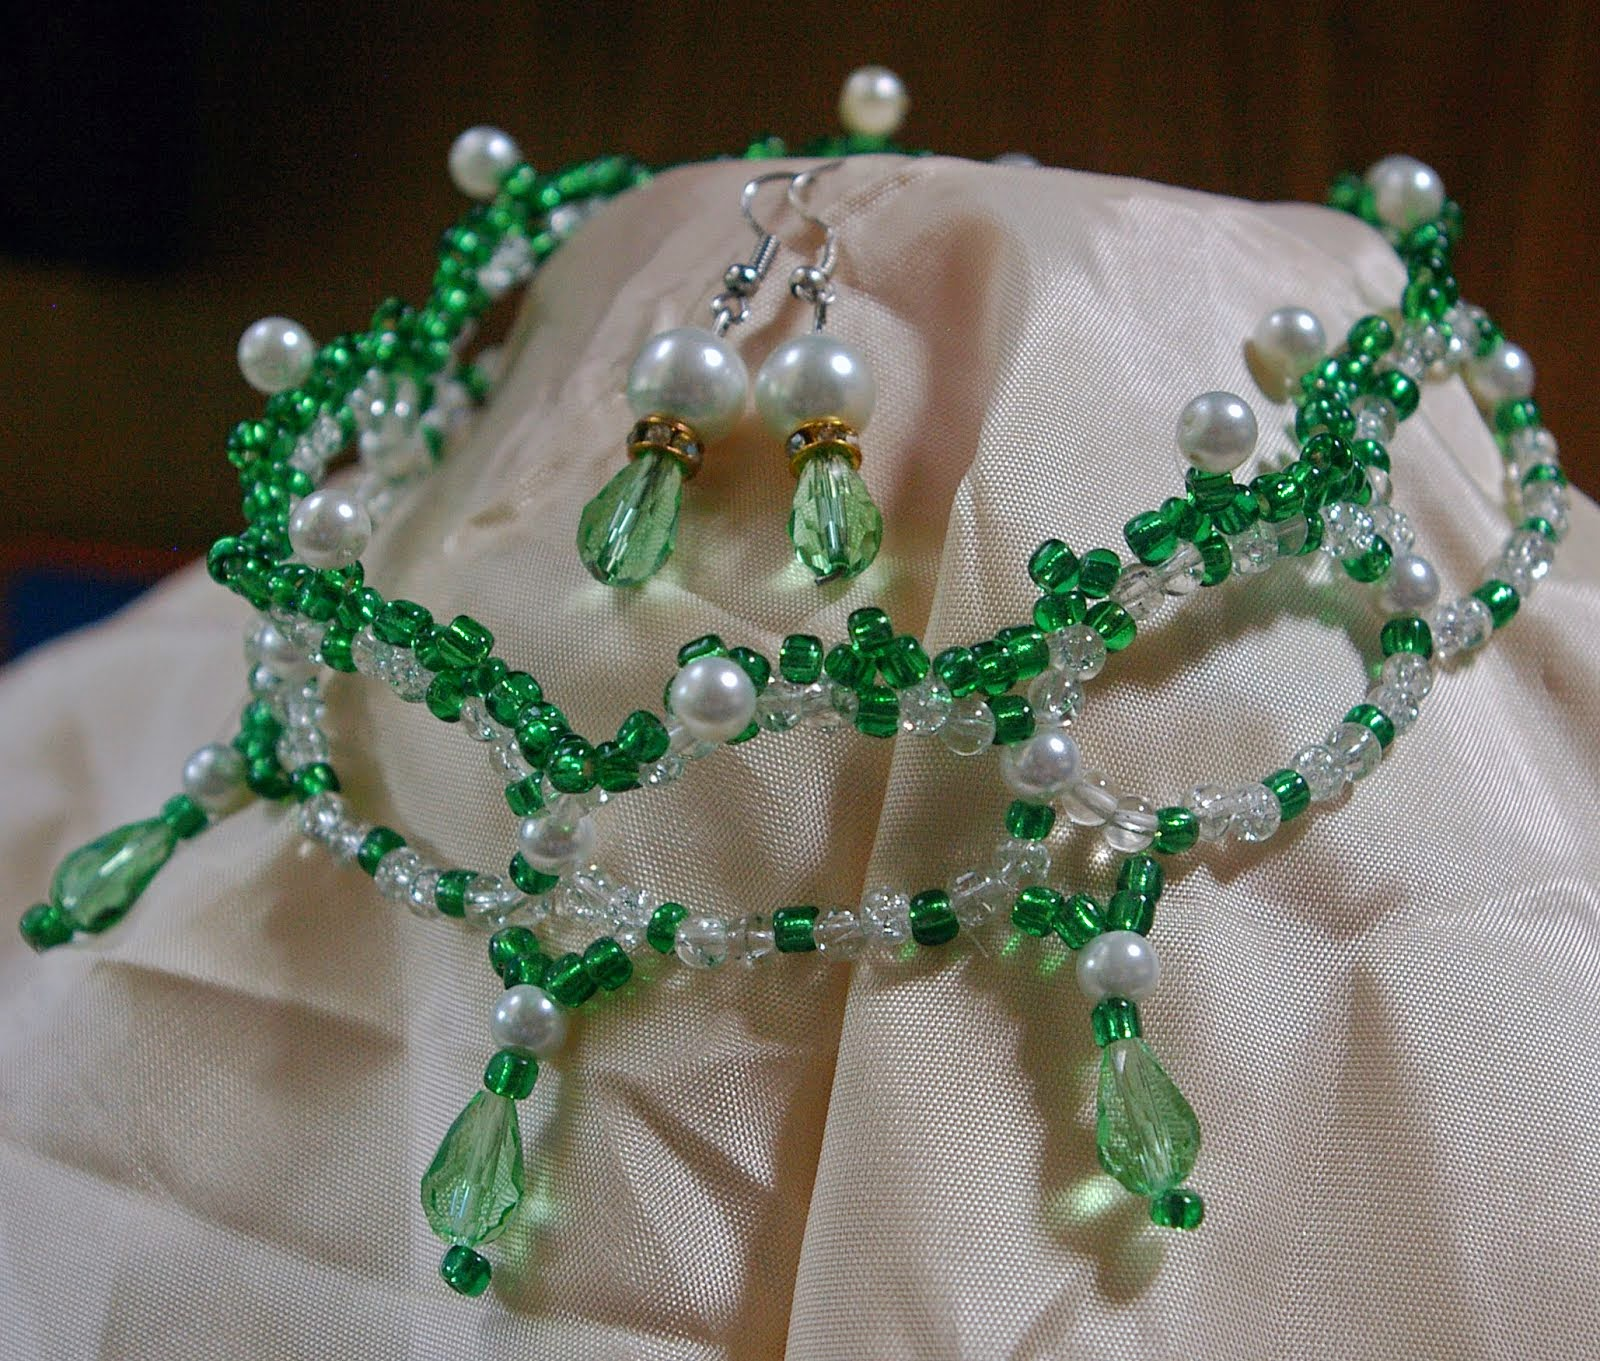 Victorian emerald necklace with earrings